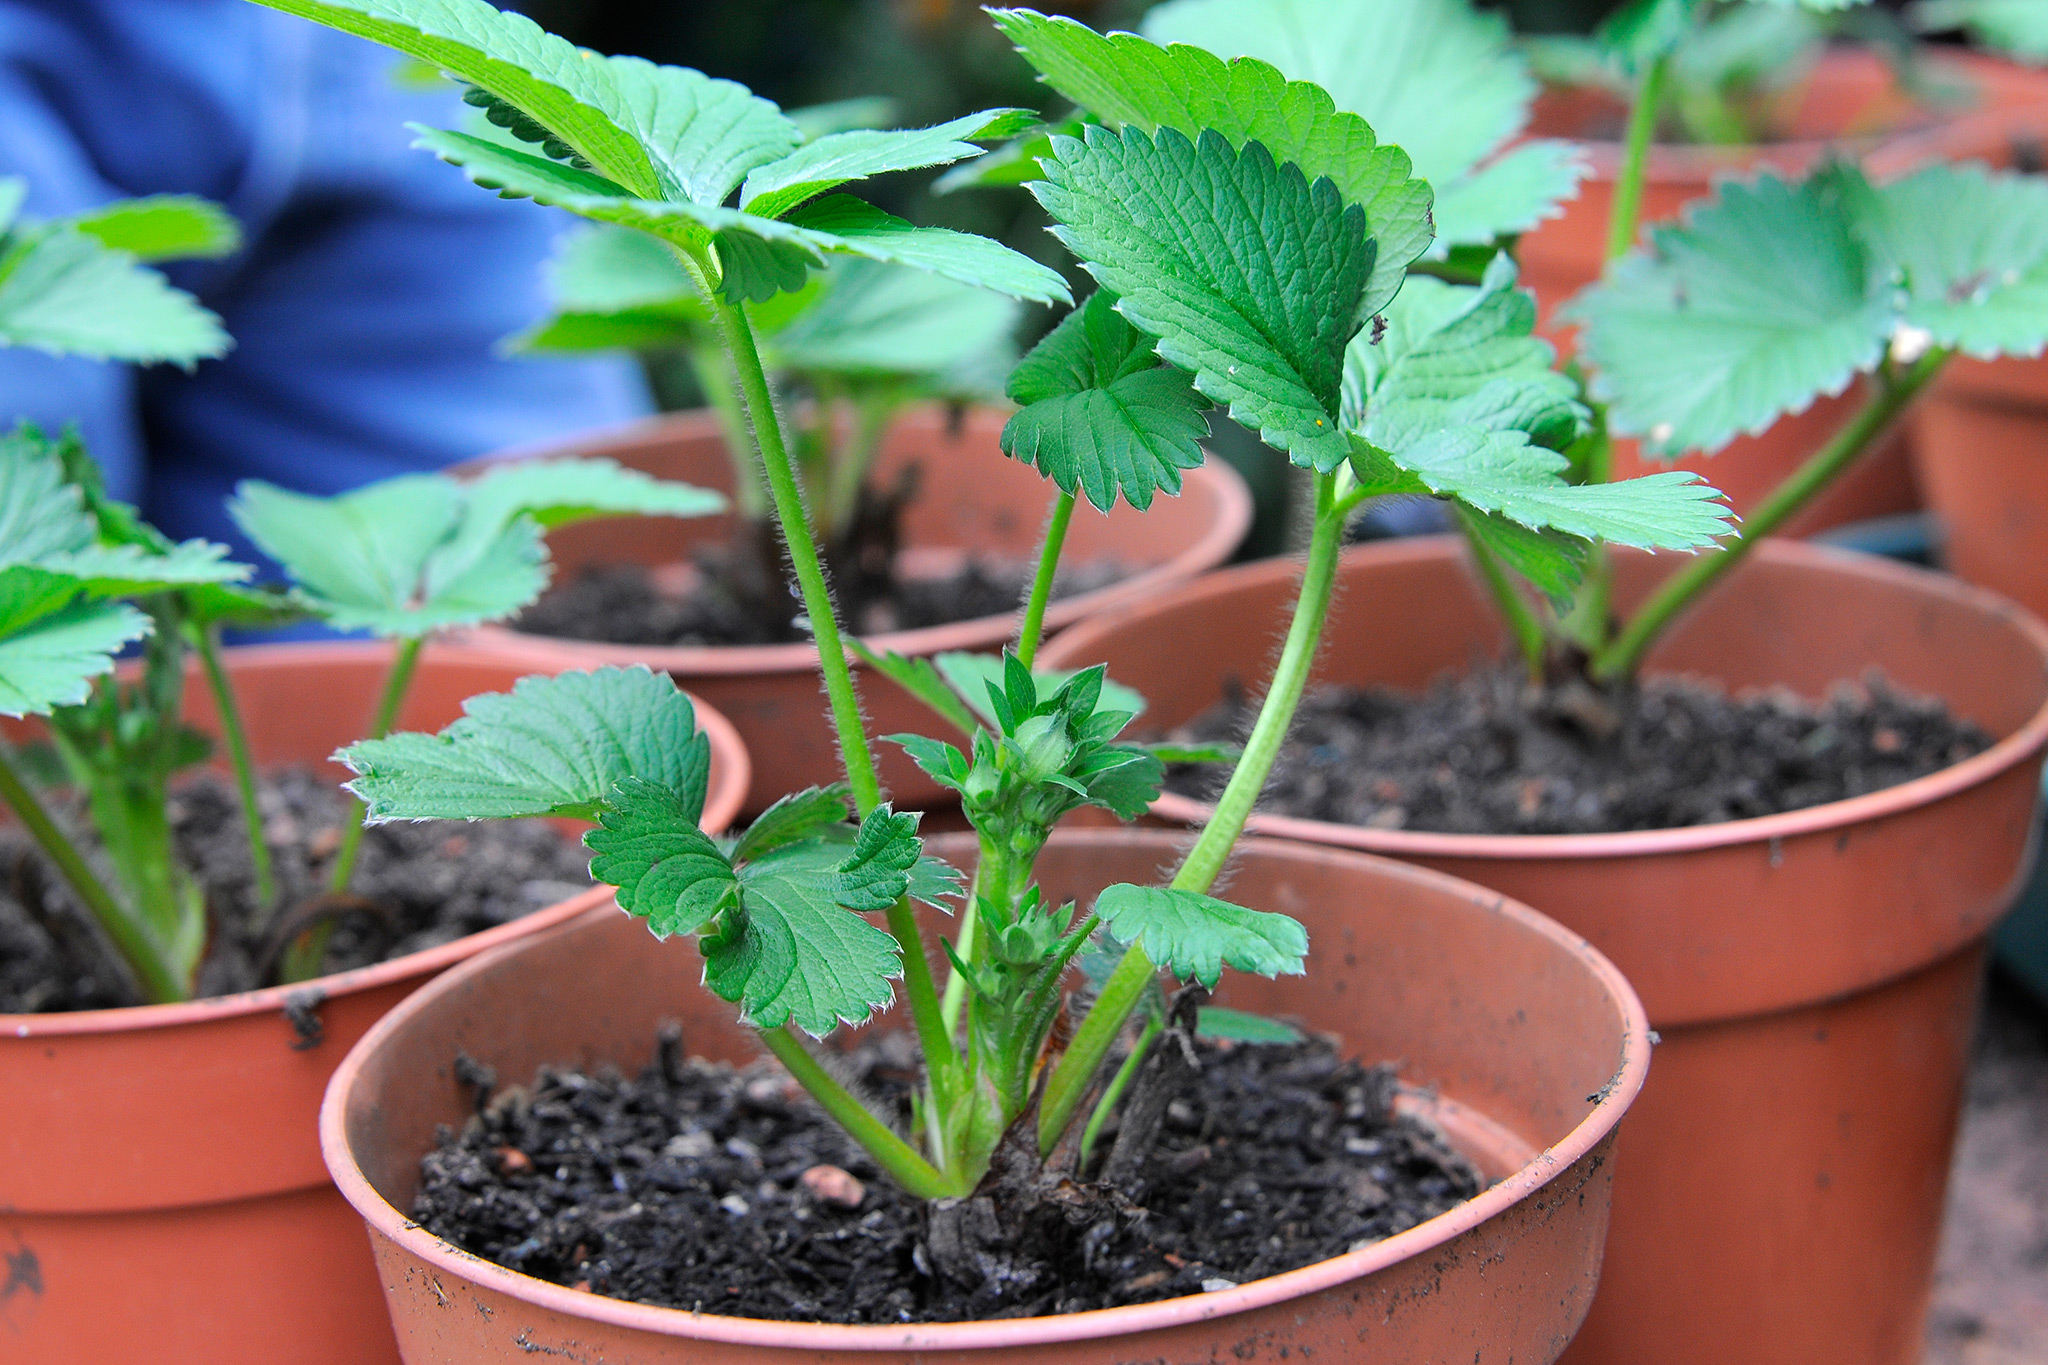 strawberry-plants-in-pots-on-the-greenhouse-bench-2